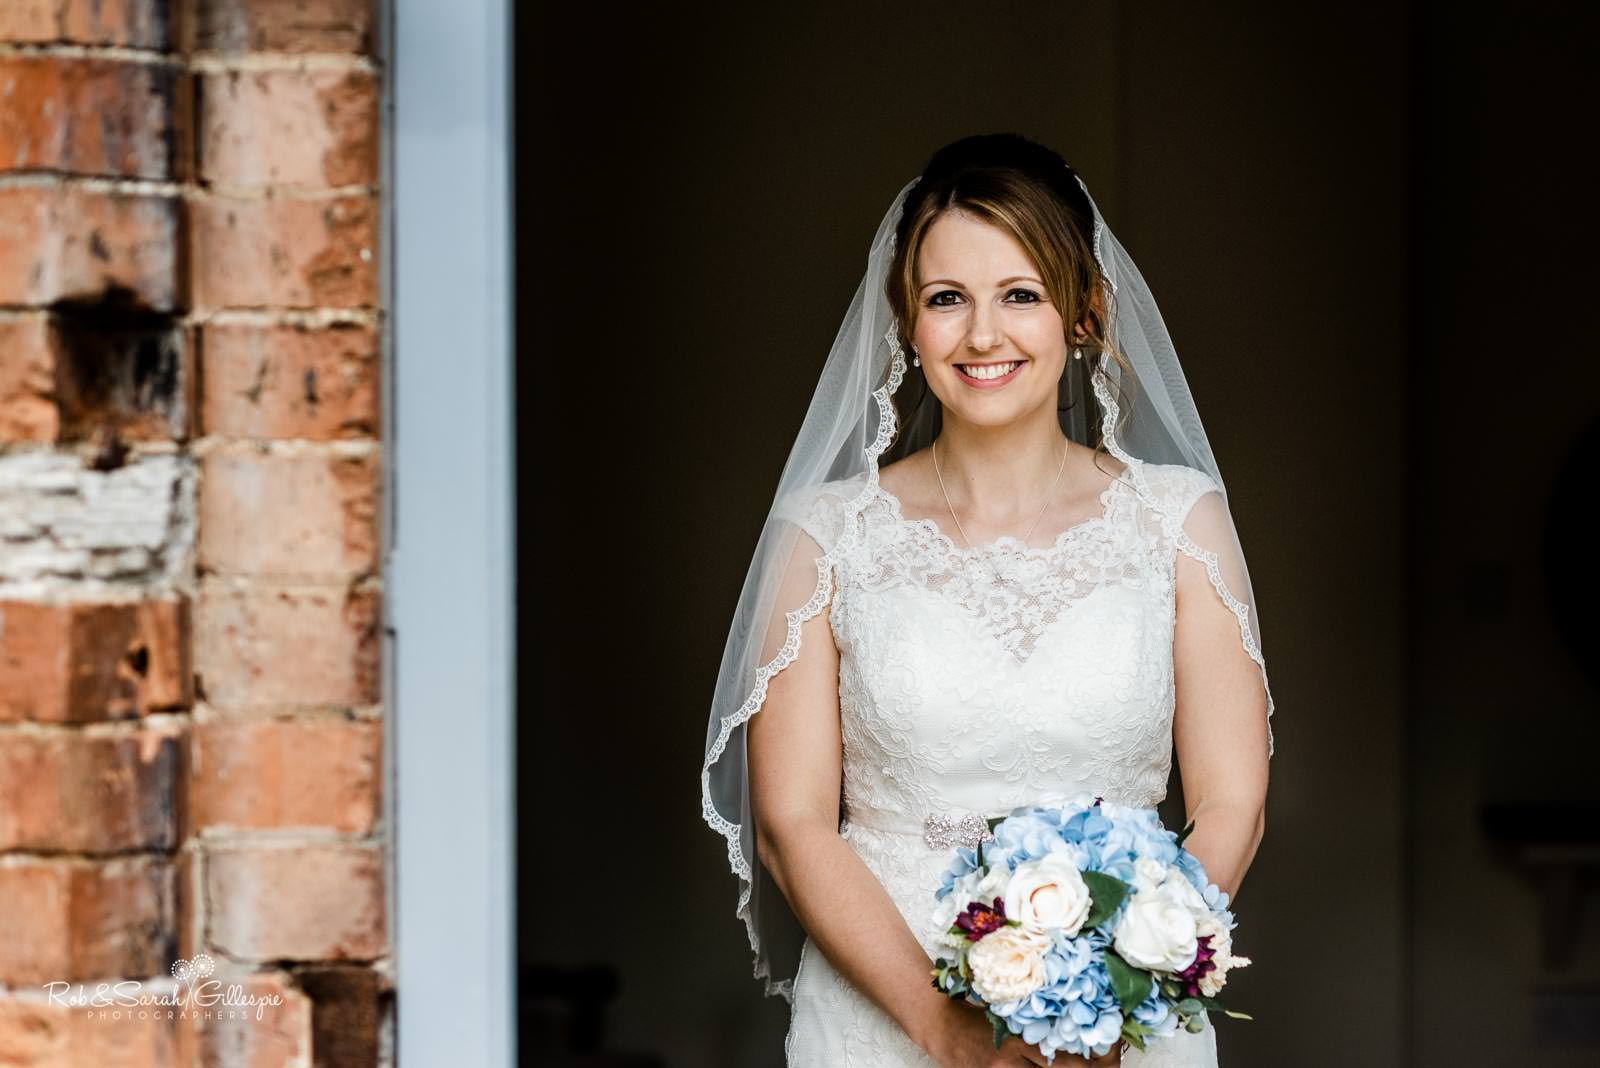 Beautiful portrait of bride in doorway at Swallows Nest Barn wedding